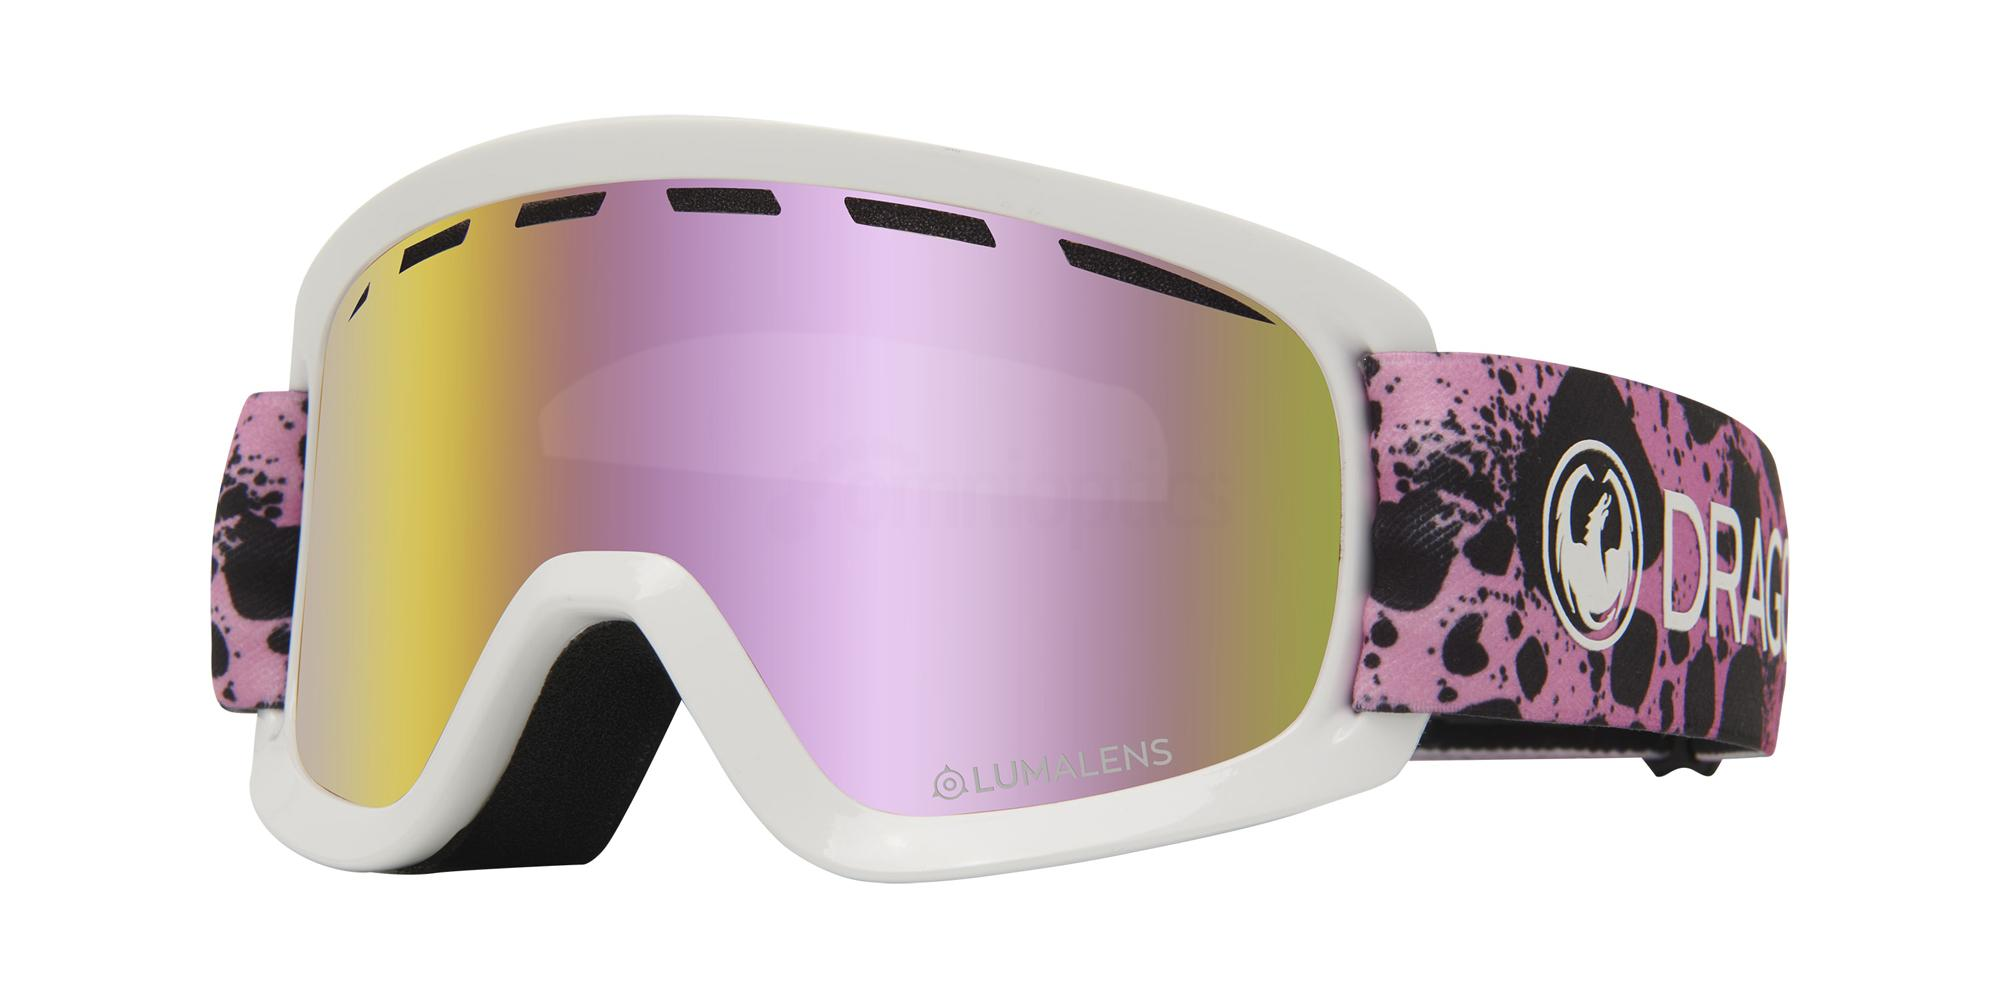 652 DR LIL D BASE ION Goggles, Dragon